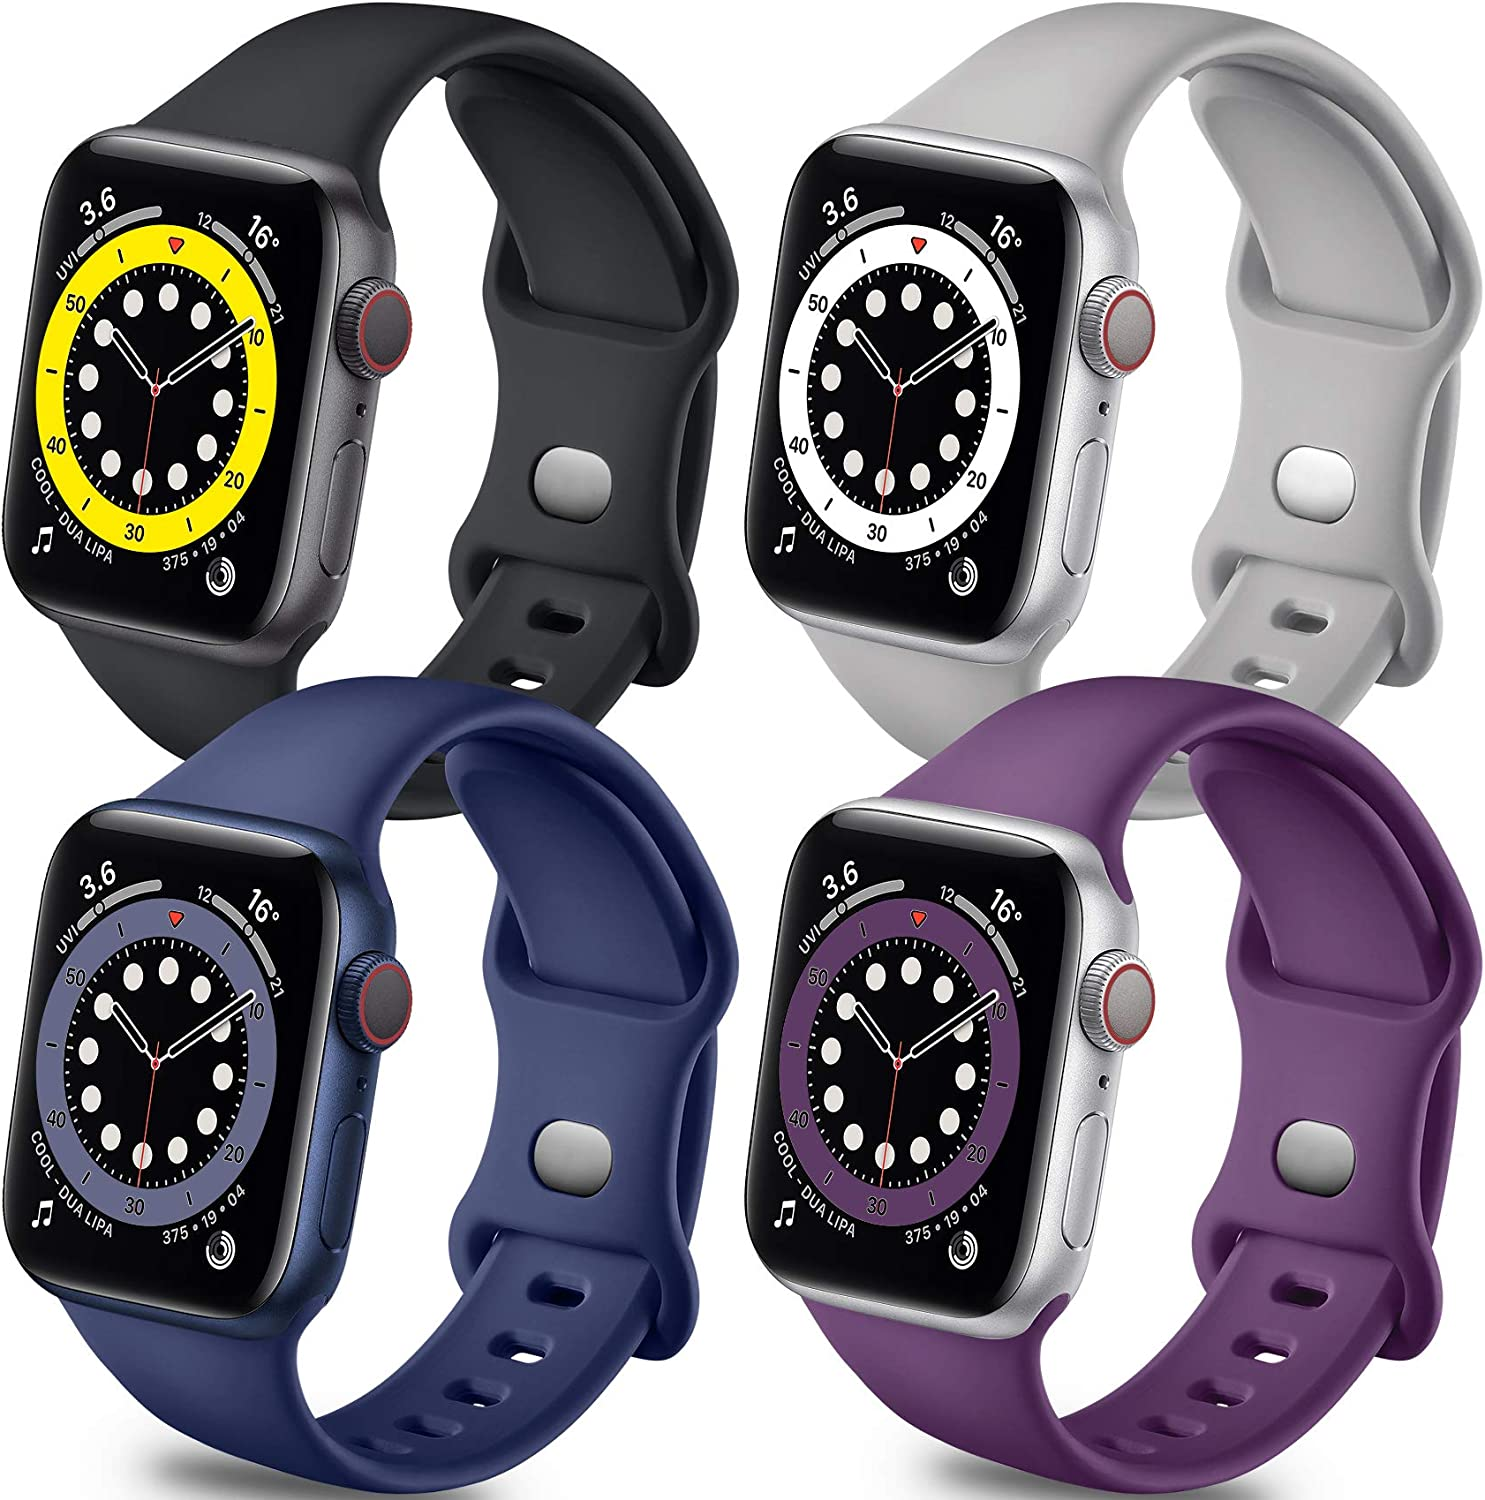 Getino Band Compatible with Apple Watch 42mm 44mm Series 6 5 4 3 2 1 SE Bands for iWatch Women Men Stylish Soft Silicone Wristband, 4 Pack, Purple, Pebble Gray, Black, Midnight Blue, S/M